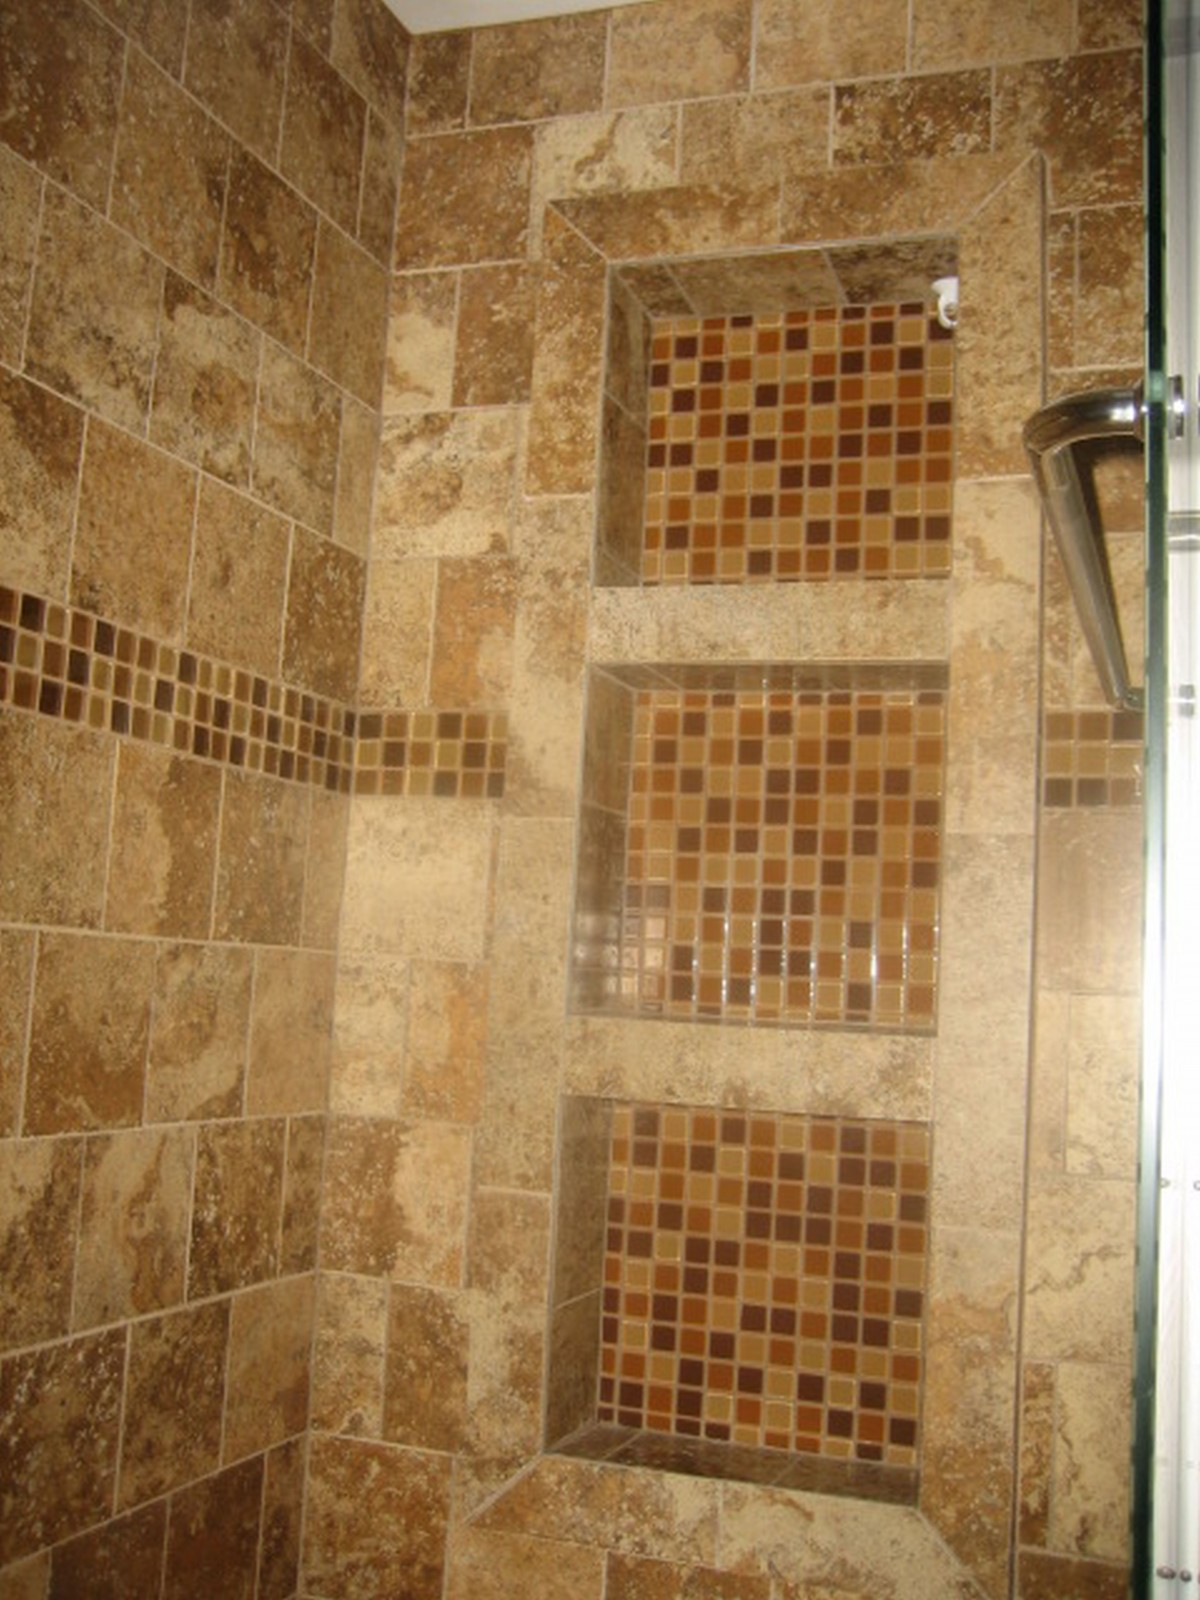 bathrooms tile ideas bathroom tile wall ideas. beautiful ideas. Home Design Ideas